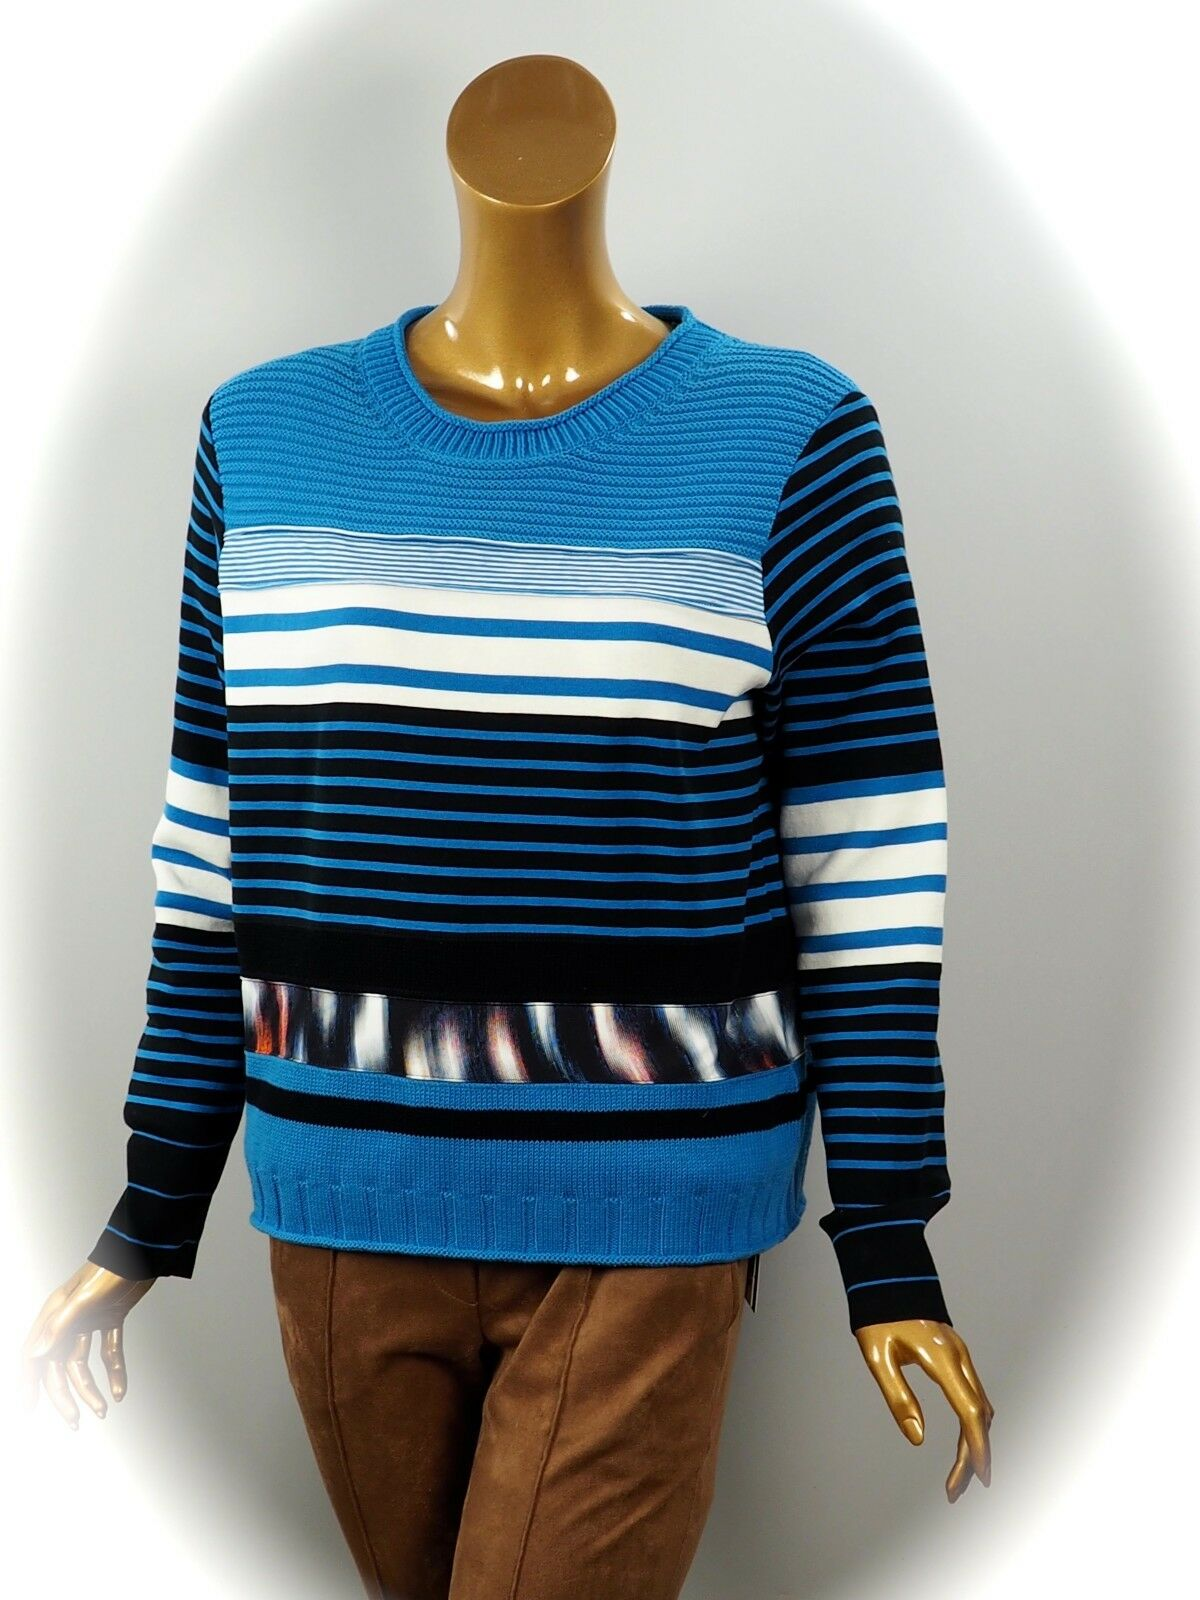 Pullover Marccain Sports Sweater Maglione PULLOVER TG. n2 36 n3 38 n5 42 NUOVO